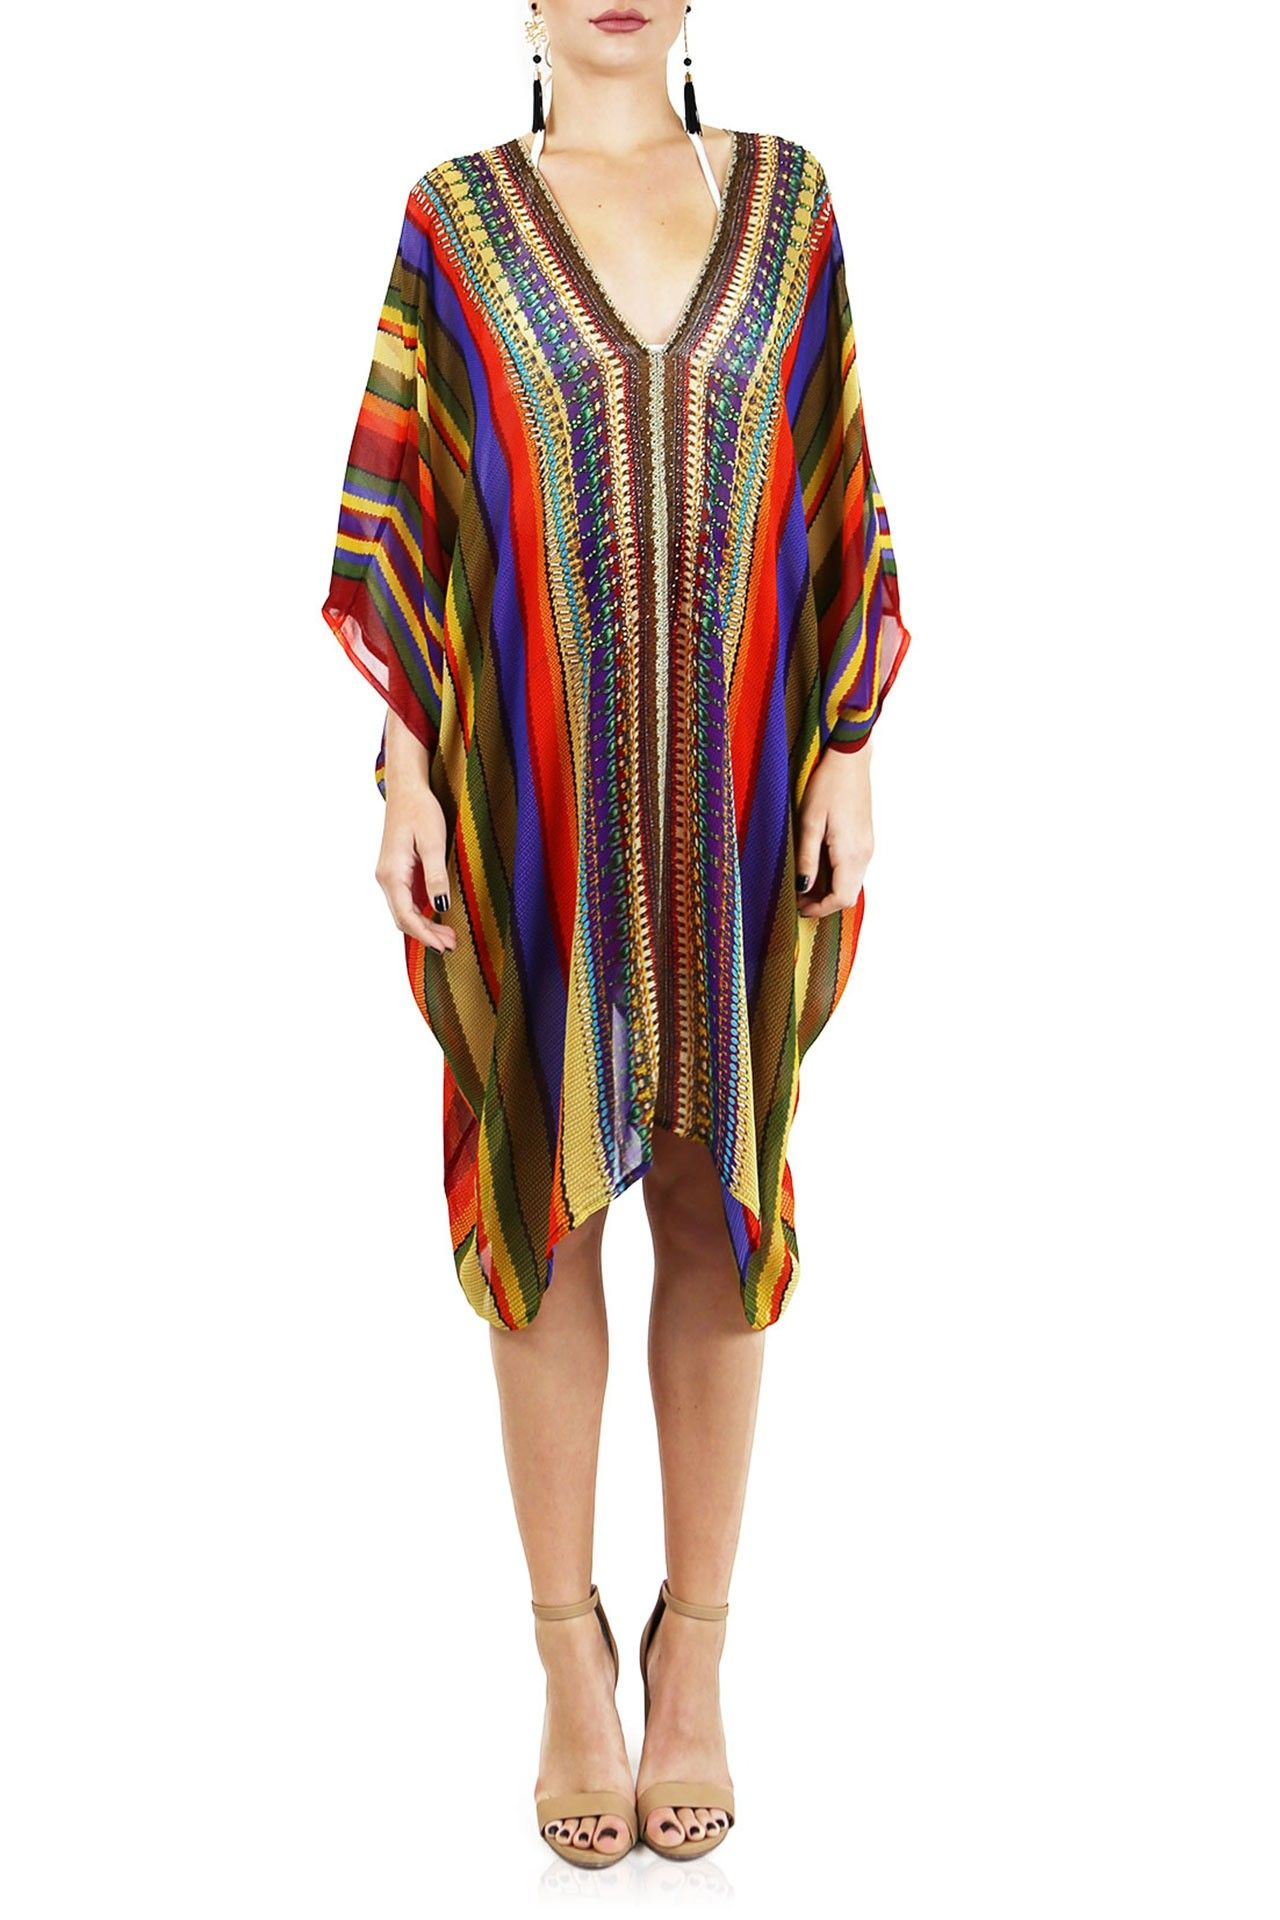 3e13f2f695b6 Beach Cover Ups For Women | Luxury Beachwear Online USA | 30 - 60% OFF  Beachwear - Shahida Parides®. Beach Cover Up | Designer ...